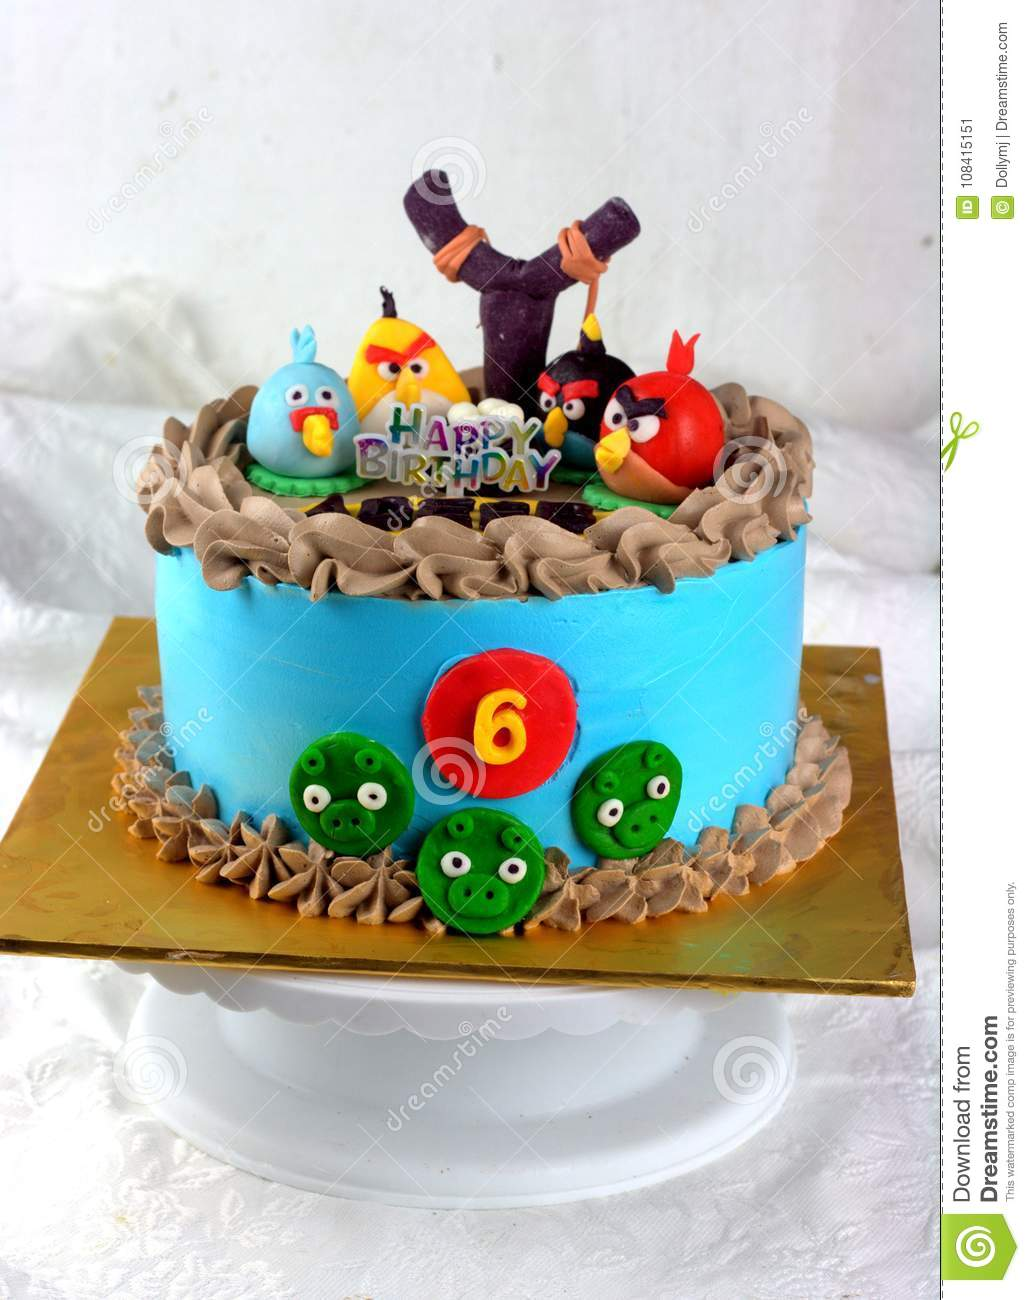 Miraculous Angry Bird Cake Editorial Photo Image Of Cake Funny 108415151 Funny Birthday Cards Online Inifofree Goldxyz